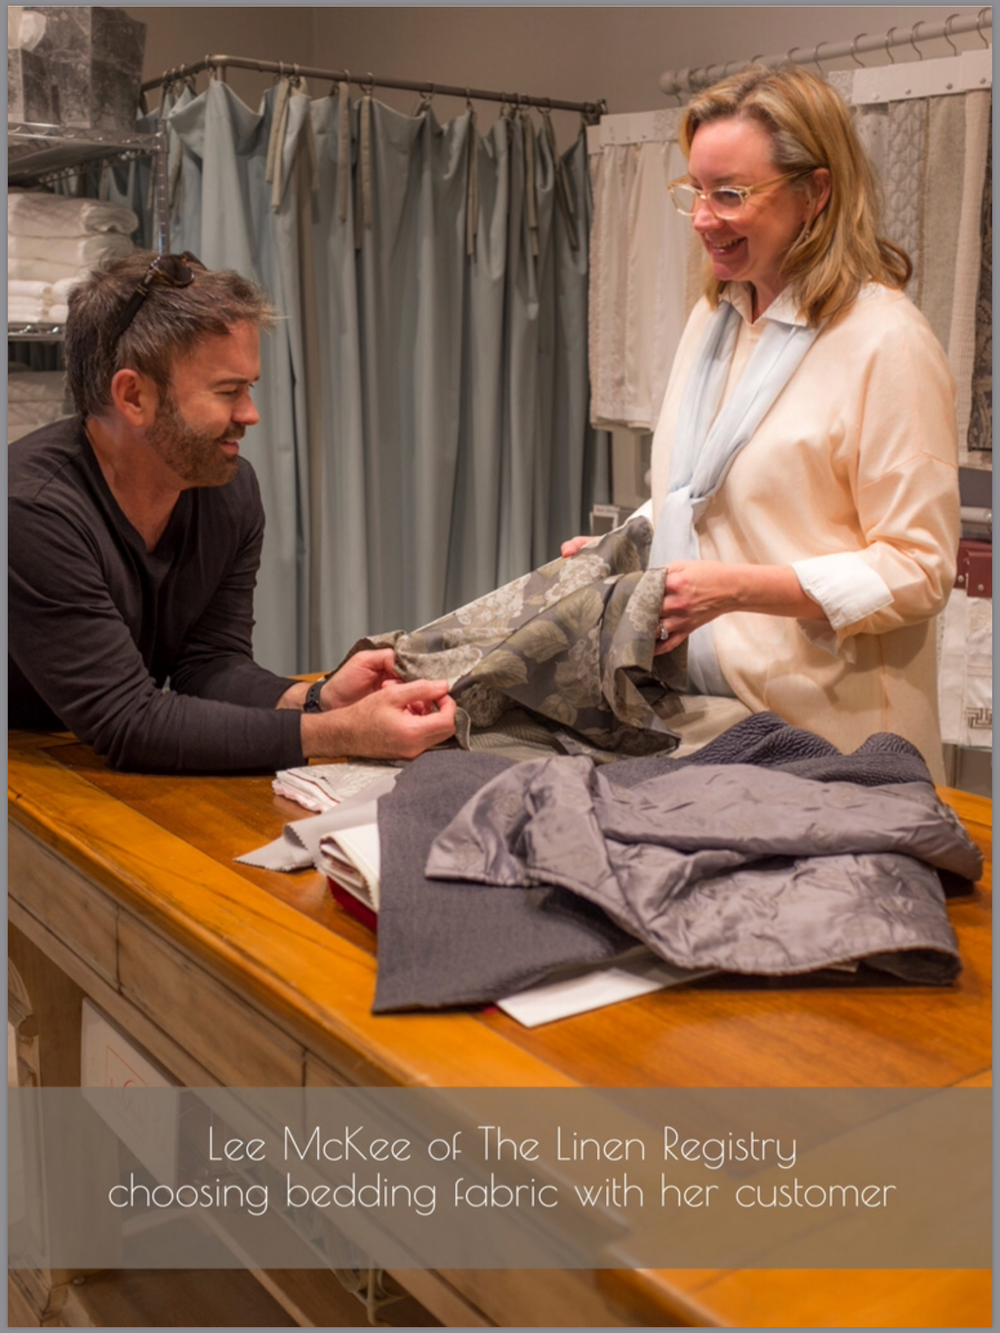 Lee McKee of The Linen Registry loves helping you select custom bedding fabric.